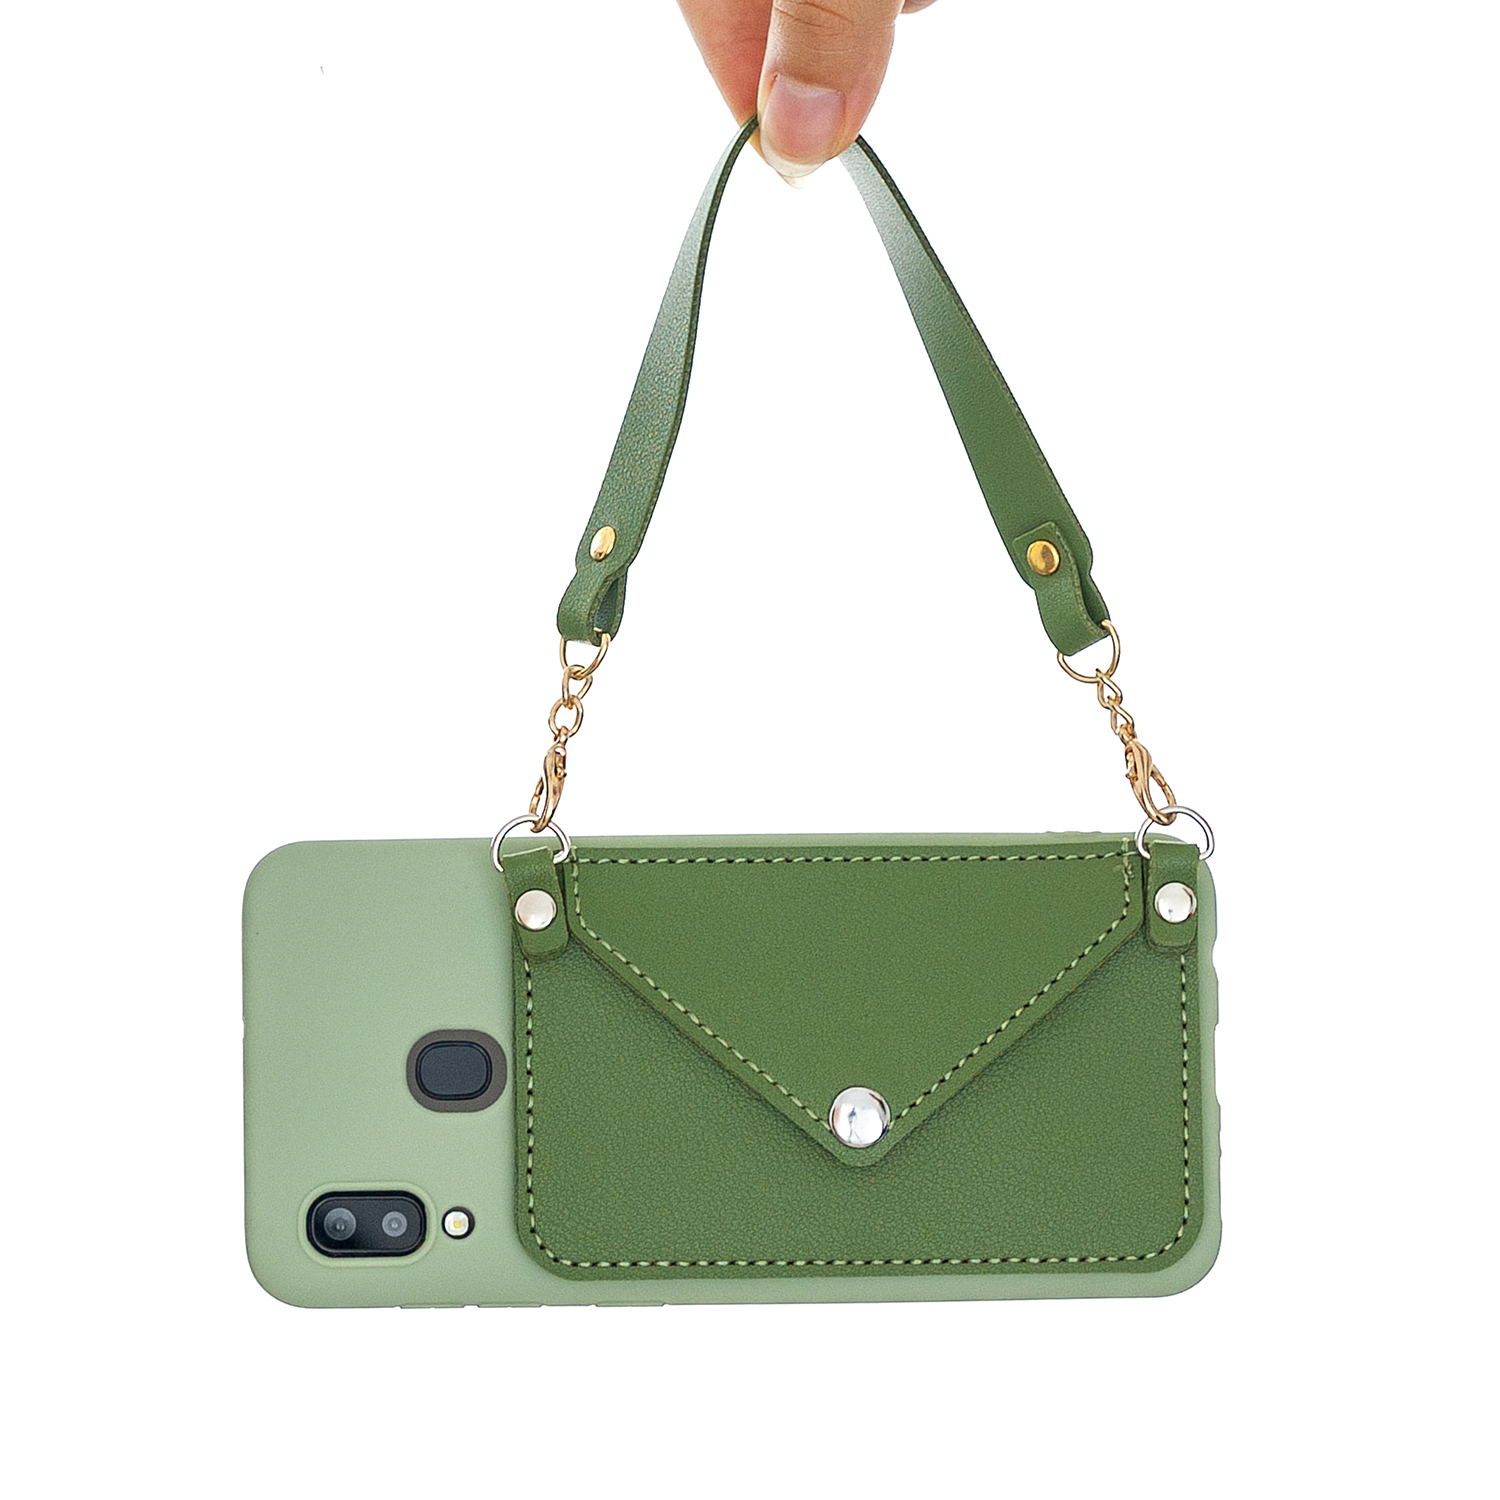 For HUAWEI P20/ P20 Lite/P20 Pro Mobile Phone Cover with Pu Leather Card Holder + Hand Rope + Straddle Rope green